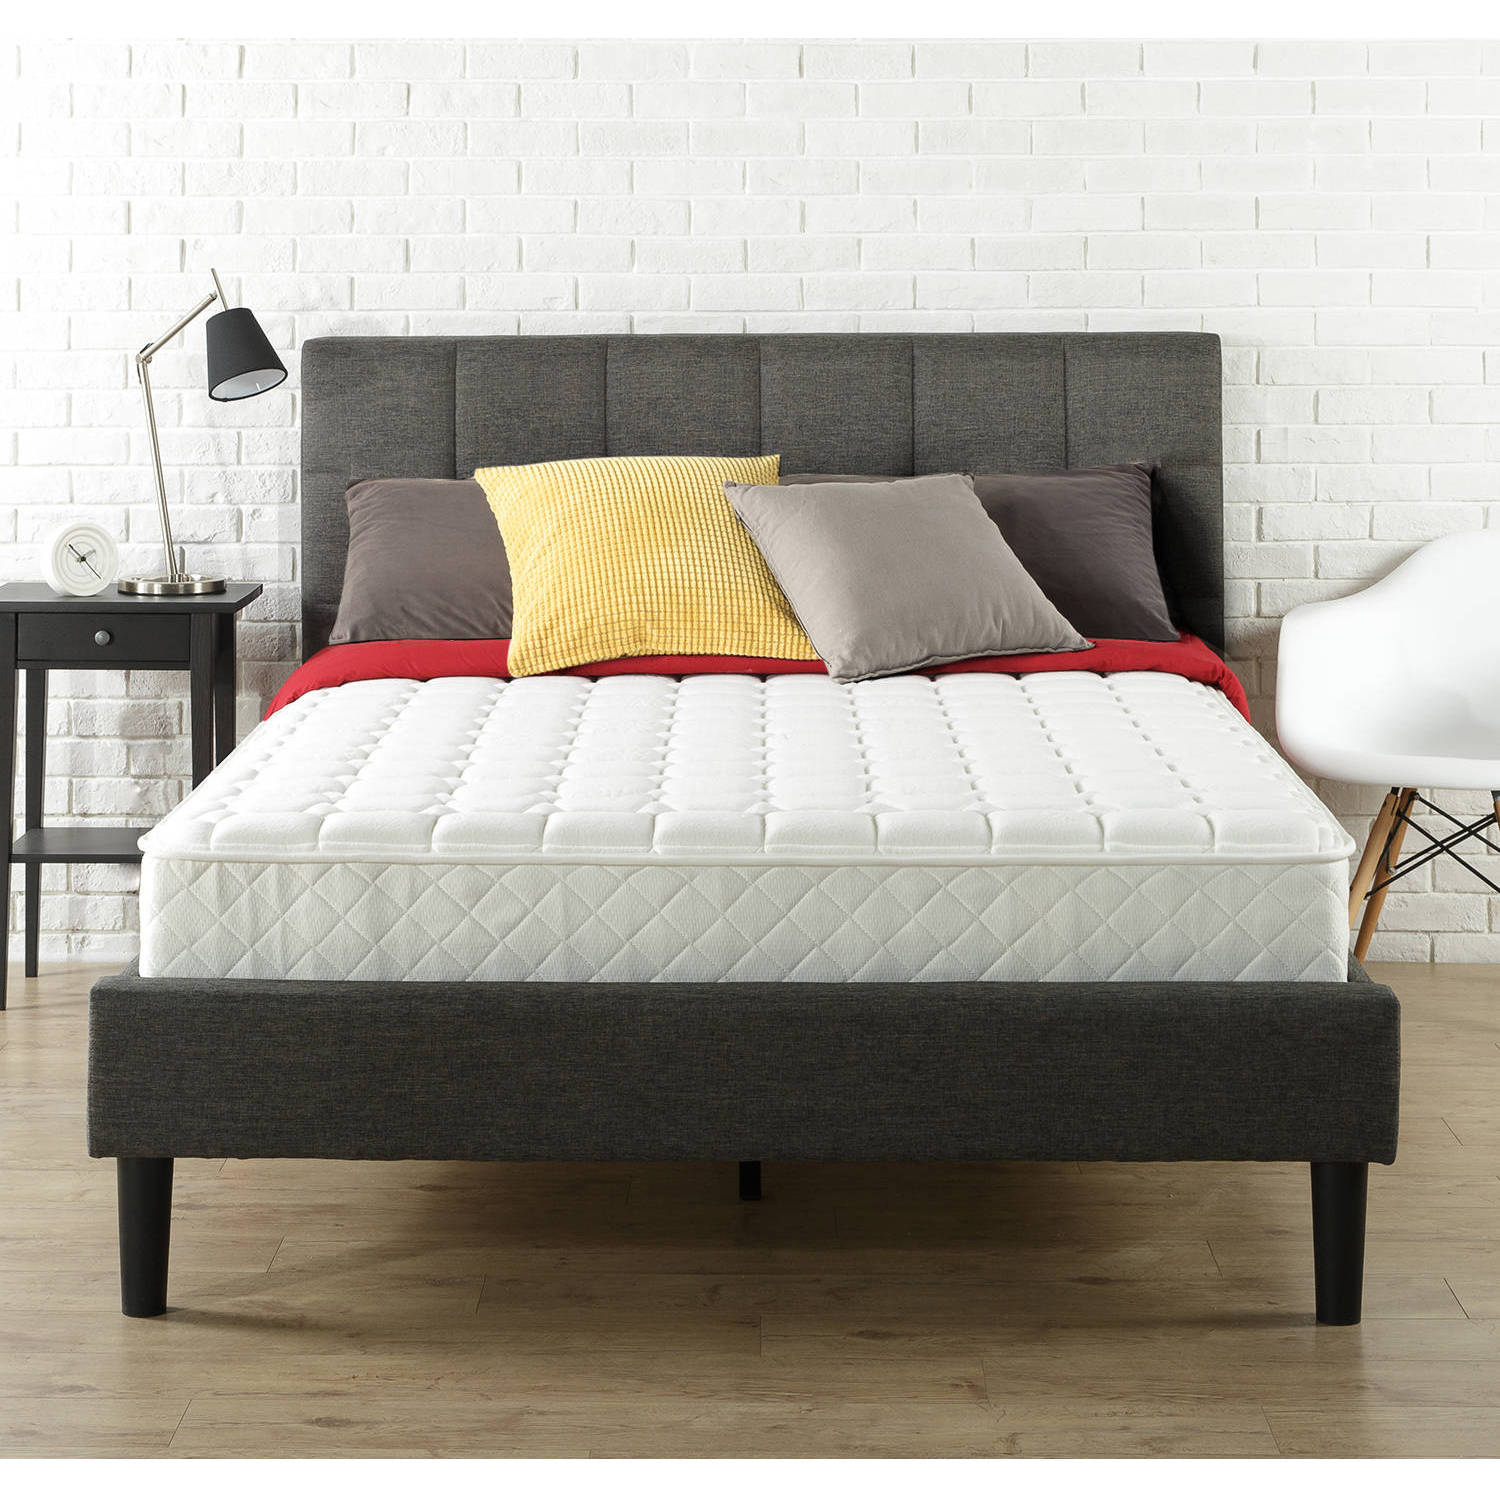 Slumber 1 - 8\'\' Spring Mattress-In-a-Box, Multiple Sizes - Walmart.com